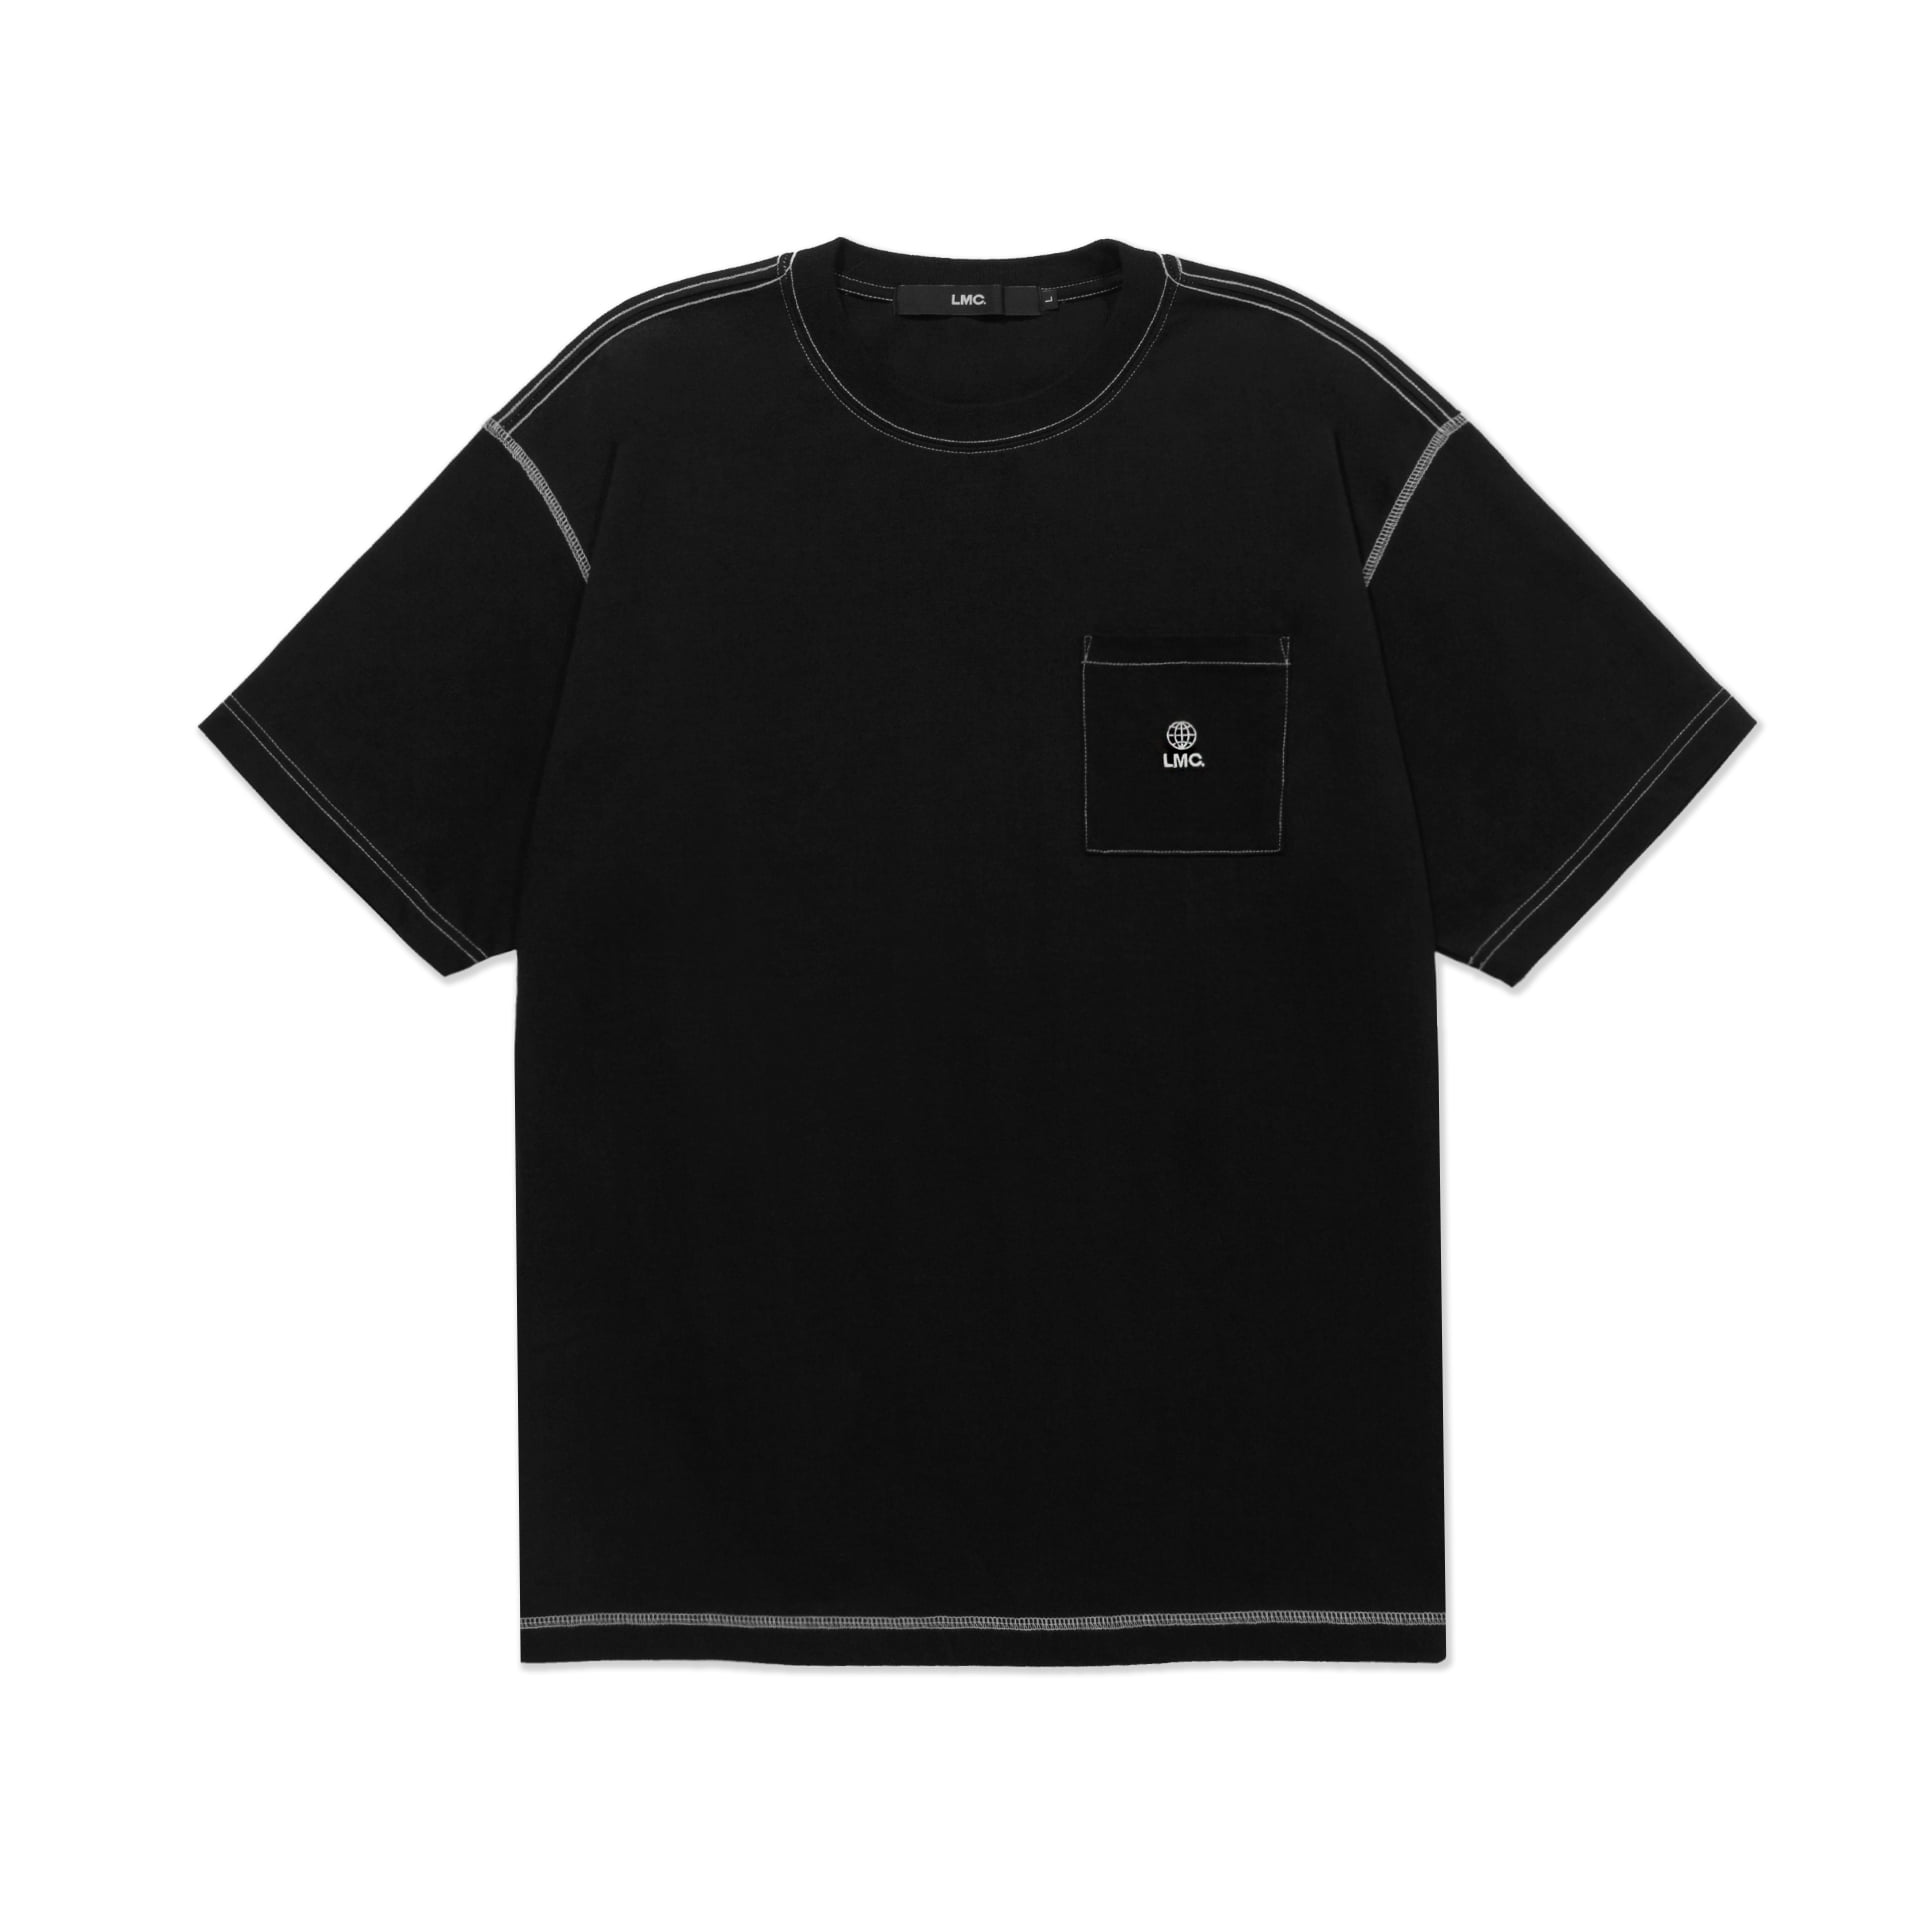 layer-LMC CONTRAST STITCH POCKET TEE black♡韓國男裝上衣